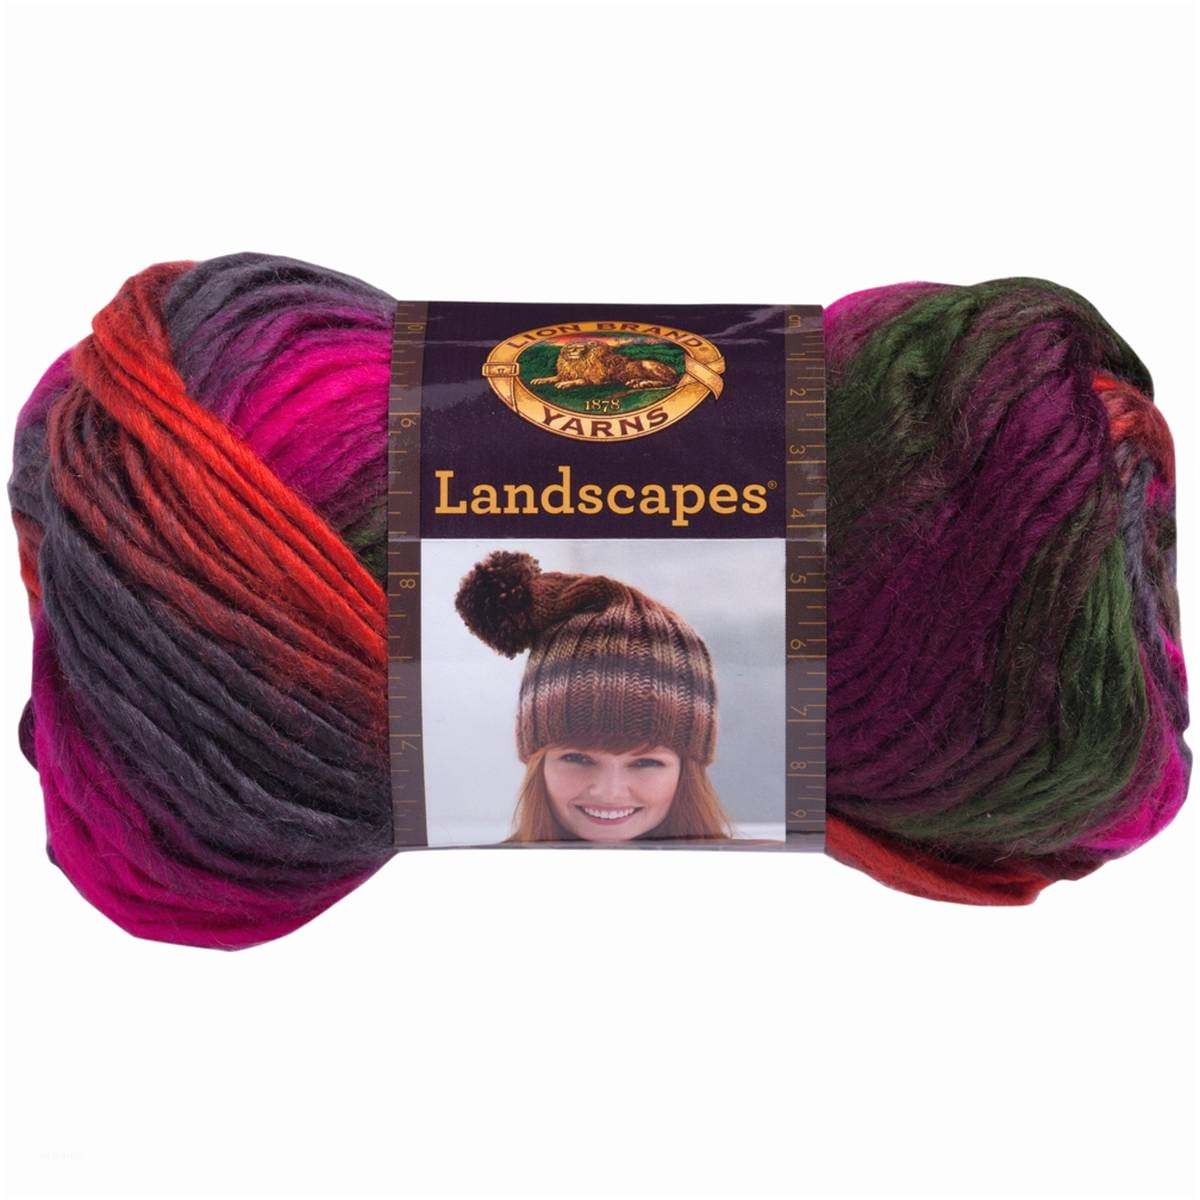 Lion Brand Landscapes Yarn New 39 Cute Lion Brand Landscapes Yarn Mountain Of Luxury 43 Images Lion Brand Landscapes Yarn